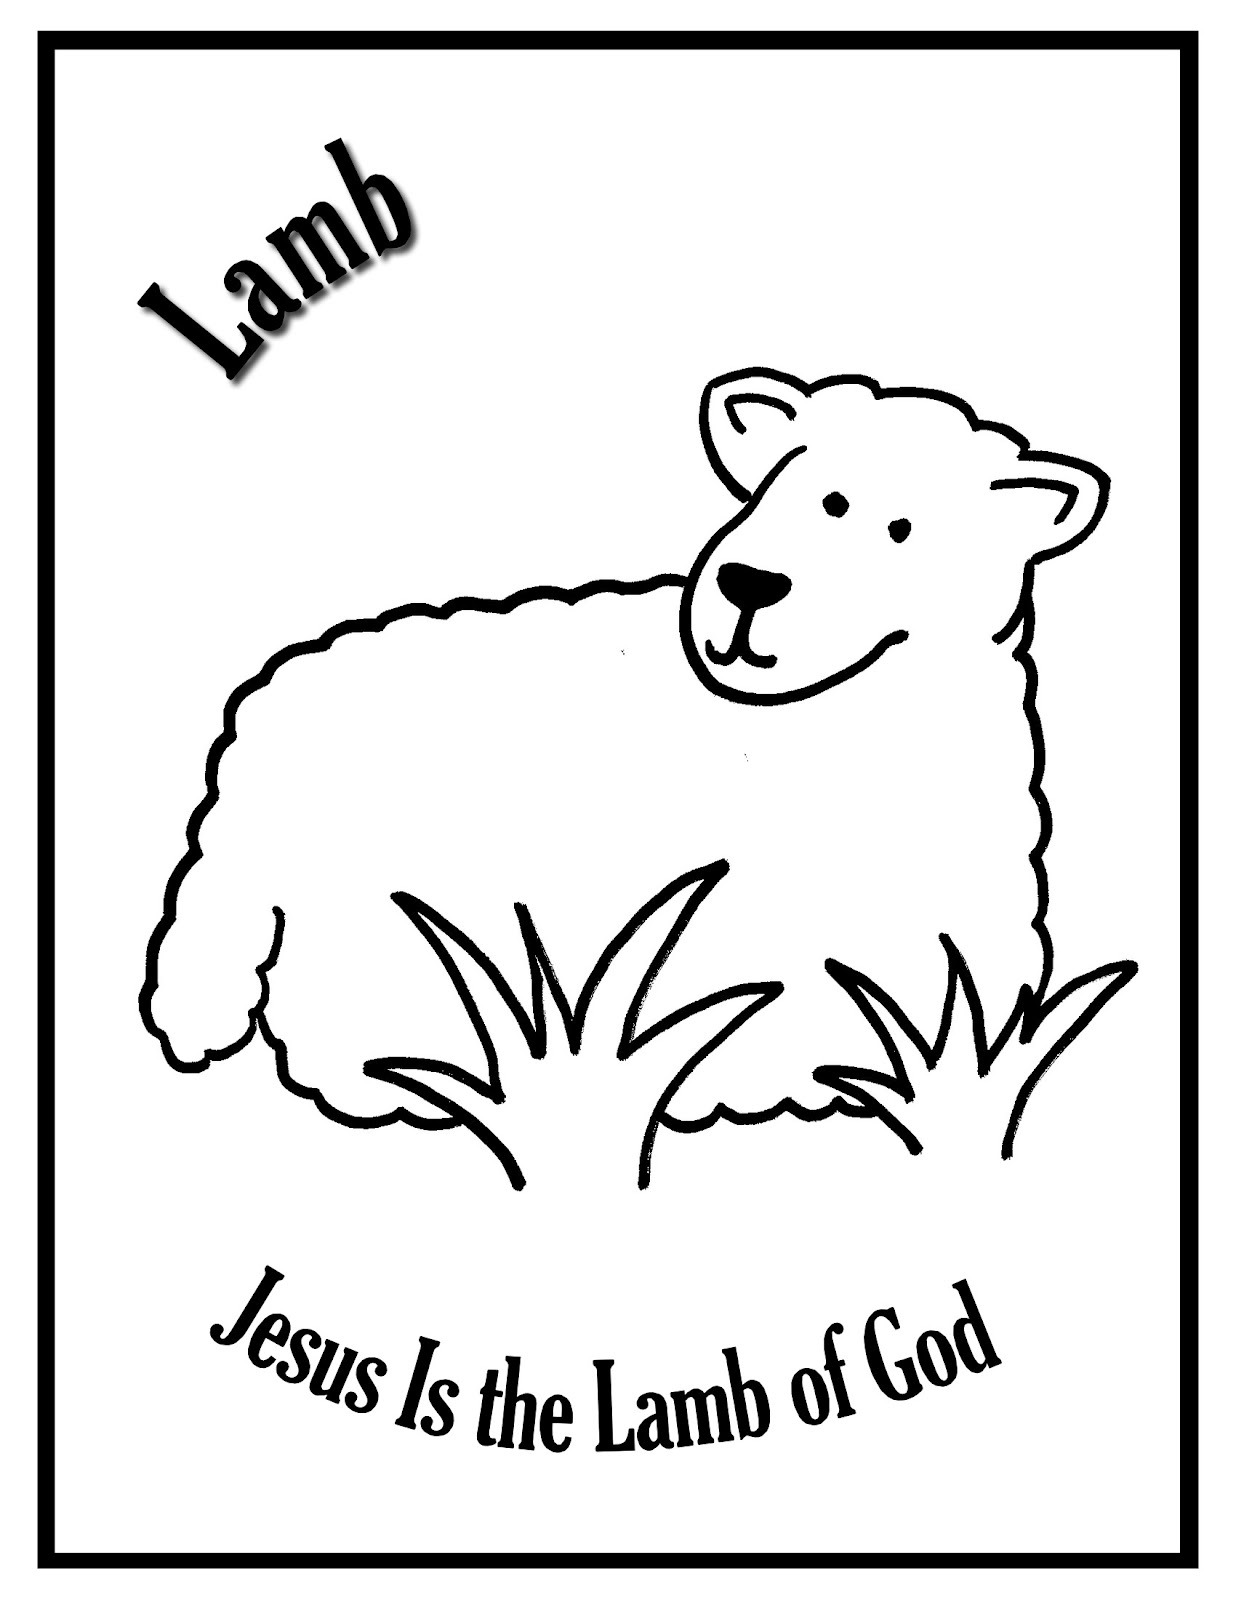 Lamb of god coloring page at getdrawings com free for personal use